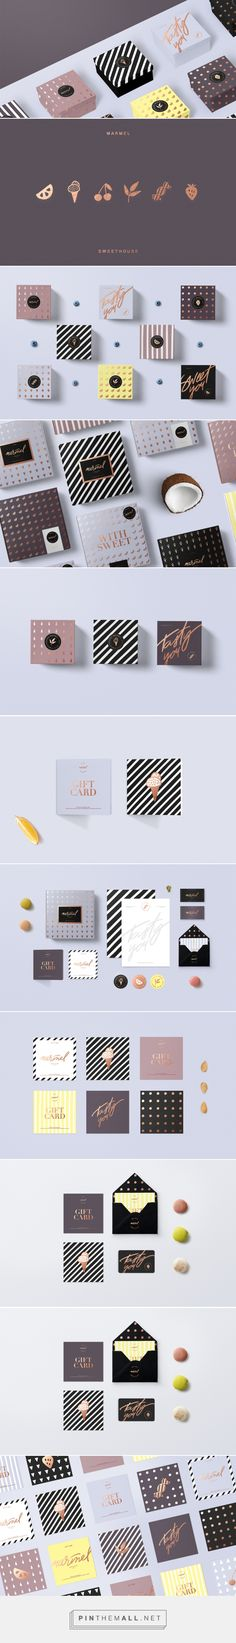 Marmel Sweet House Branding | Fivestar Branding – Design and Branding Agency & Inspiration Gallery